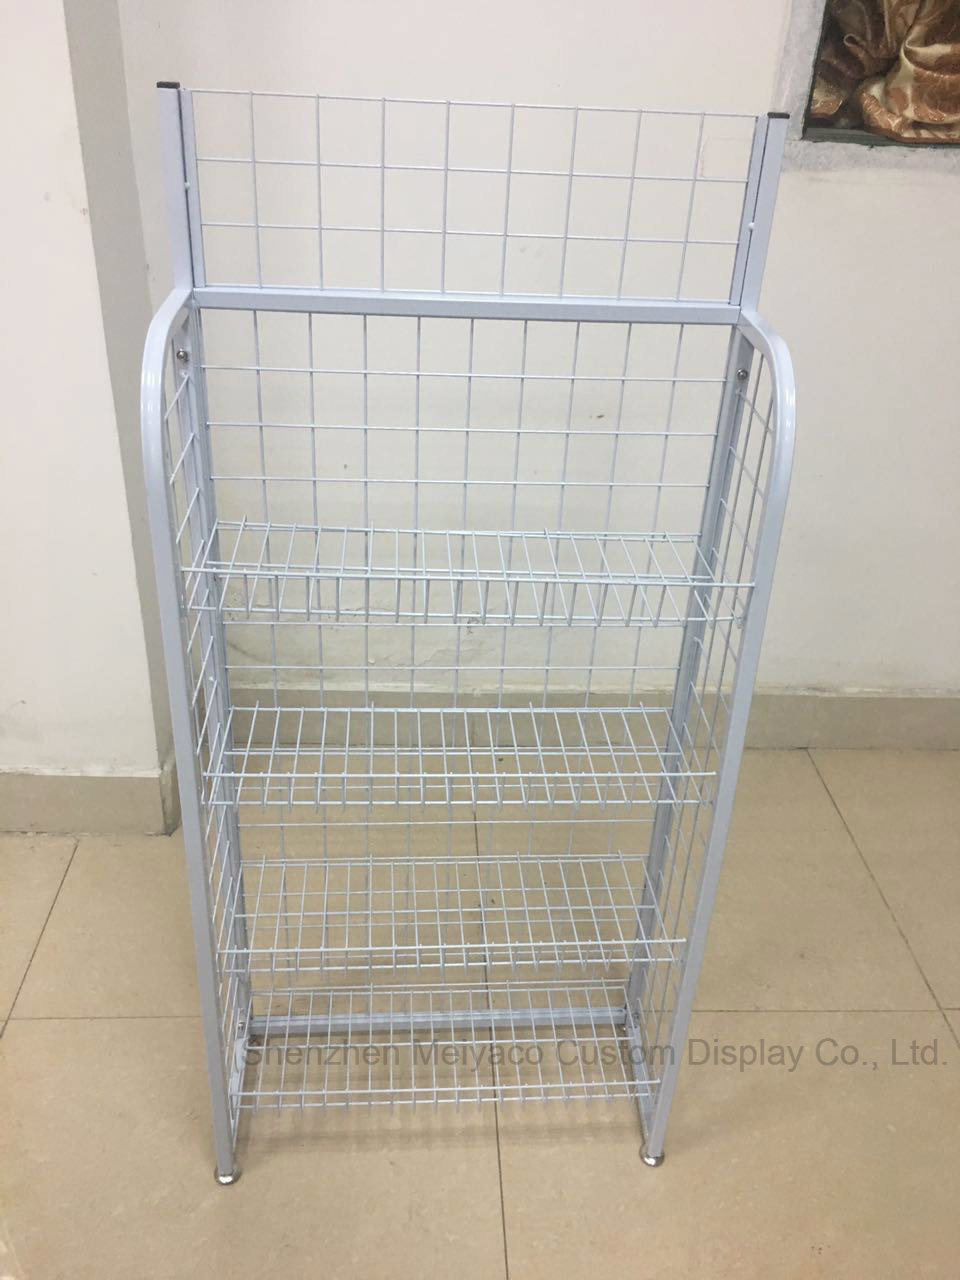 productimage china supermarket candy countertop rack small wire display metal shelf inunemtrhgcs snack chic